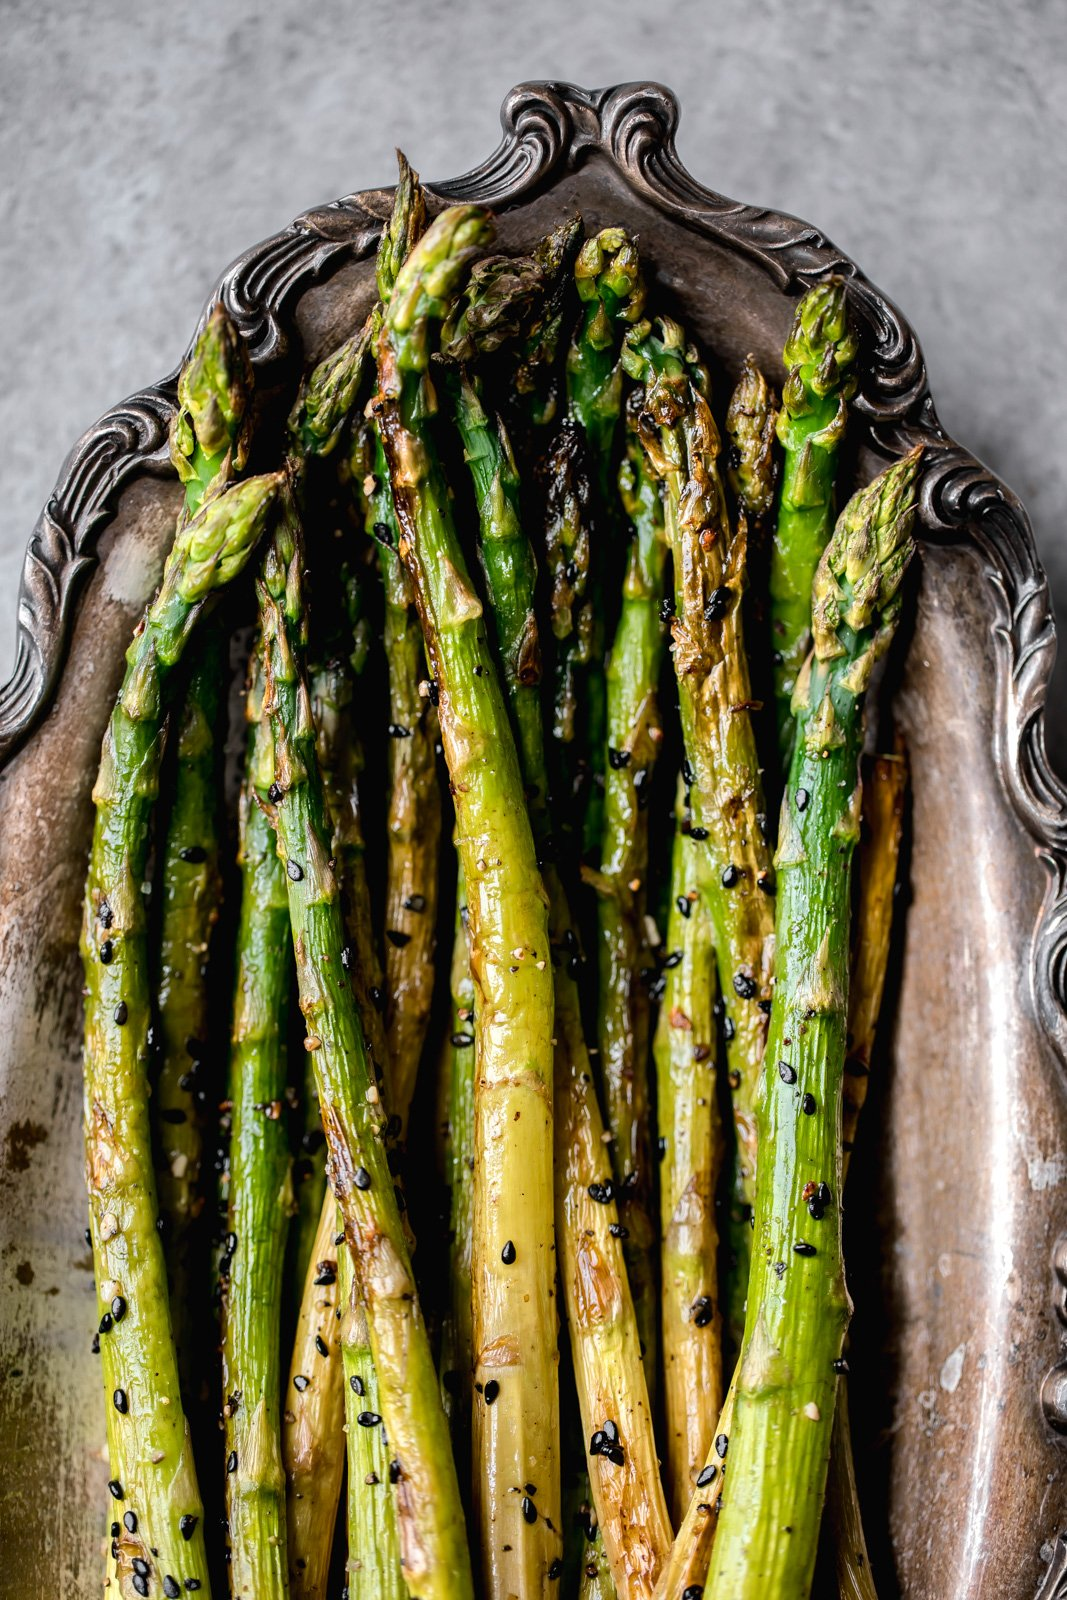 roasted asparagus on a platter